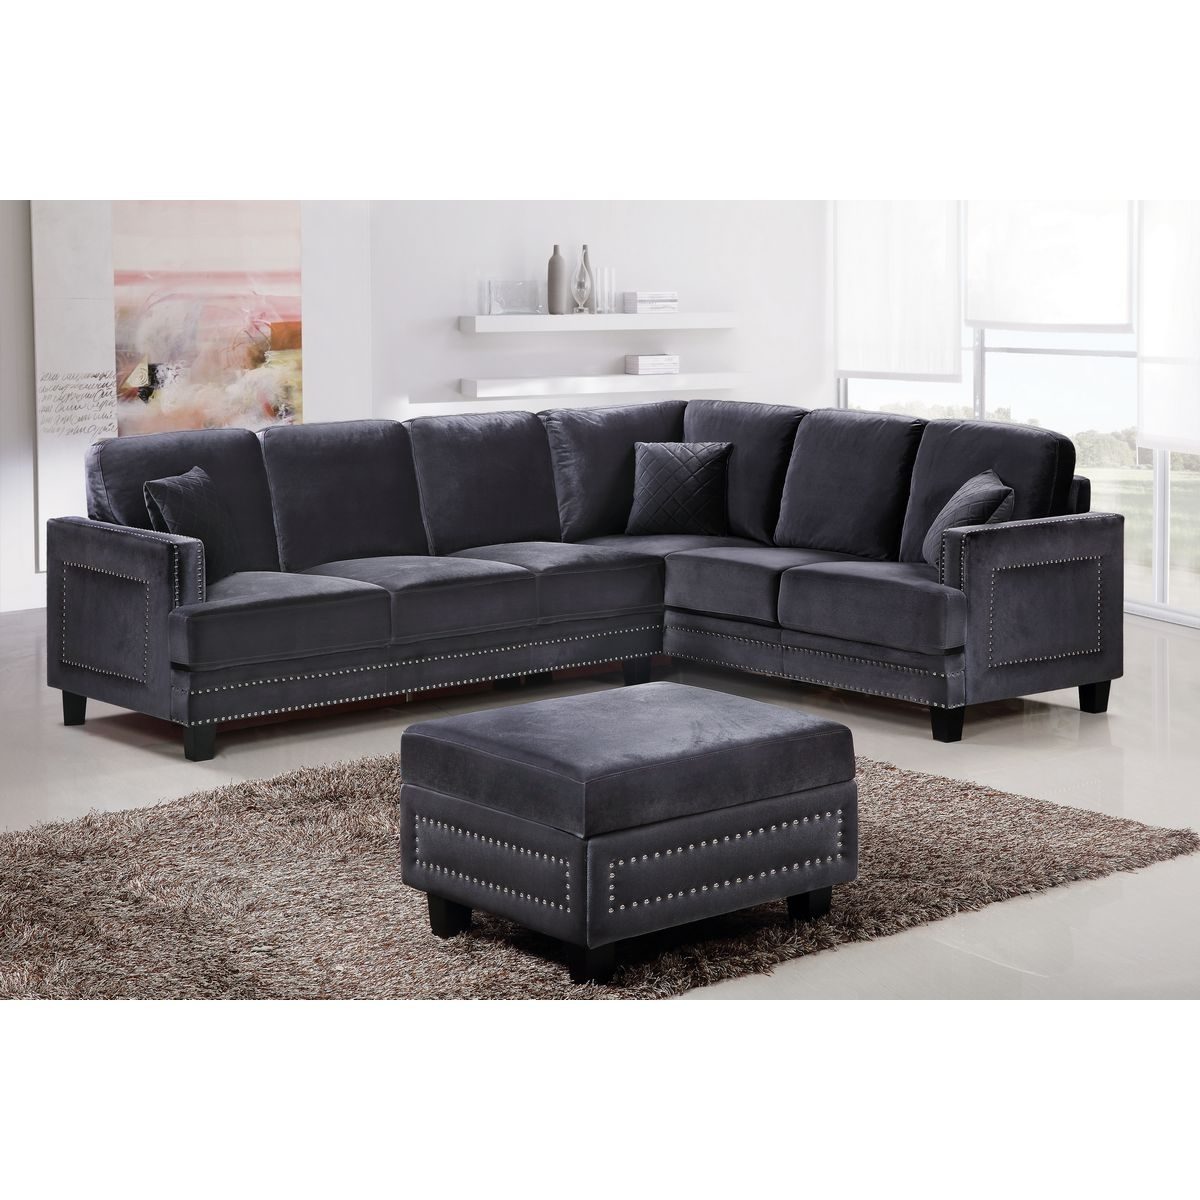 Sectional Sofa With Nailhead Trim Meridian Furniture 655Gry Ferrara Throughout Sectional Sofas With Nailheads (Image 6 of 10)